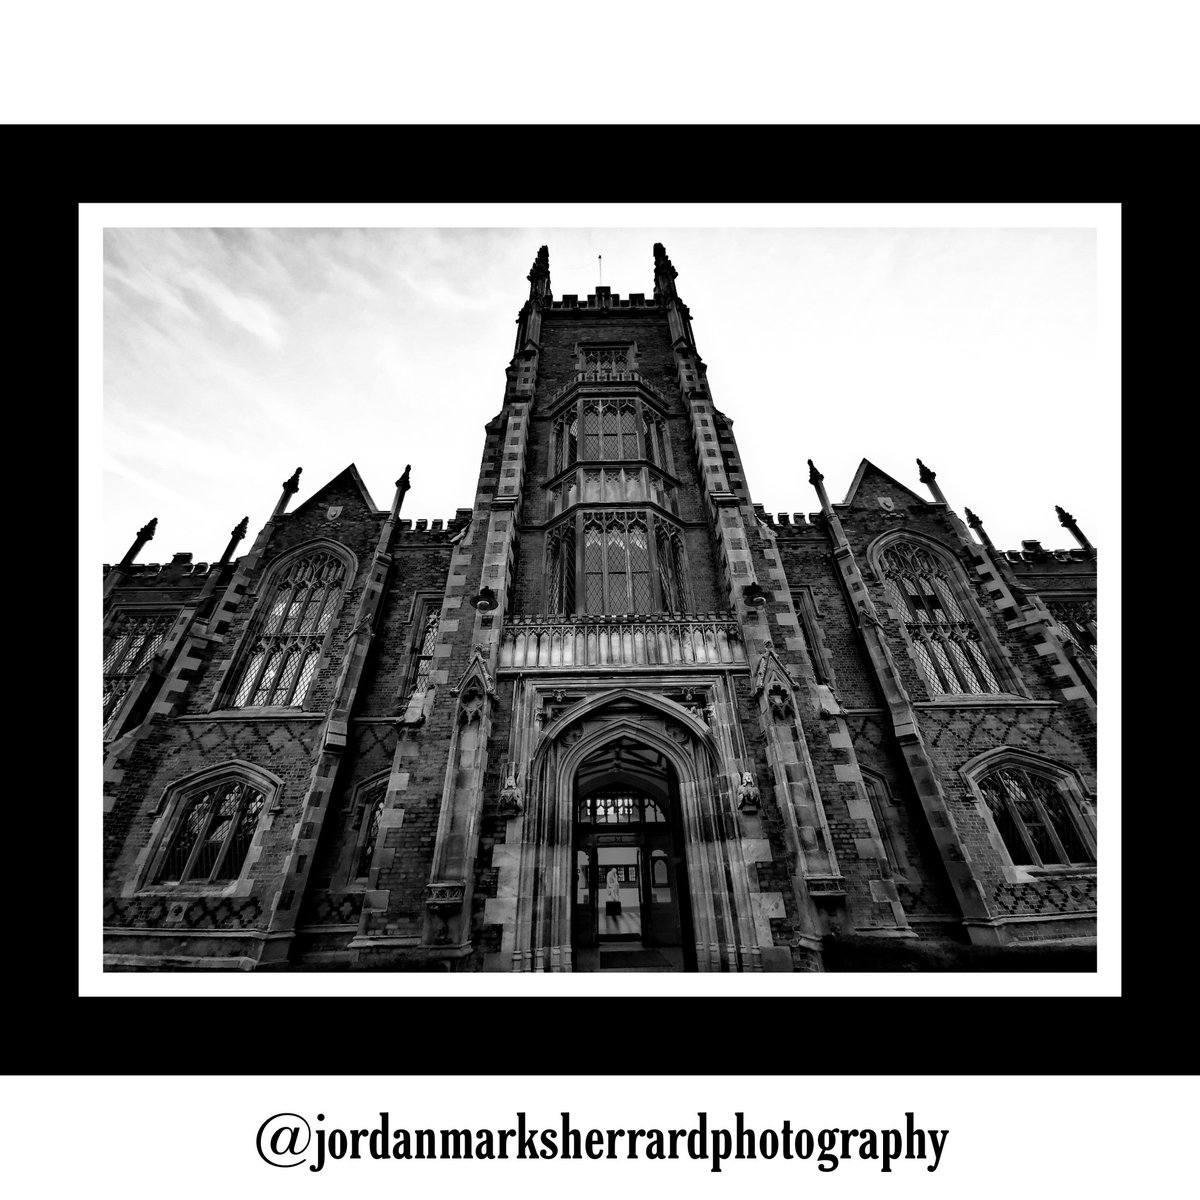 My 2nd year of university is almost complete! Easter break is fast approaching! #photograph #photography #photo #photographylovers #photooftheday #belfast #amateurphotographer #amateurphotography #blackandwhite #blackandwhitephotography #Belfasthour #retweet